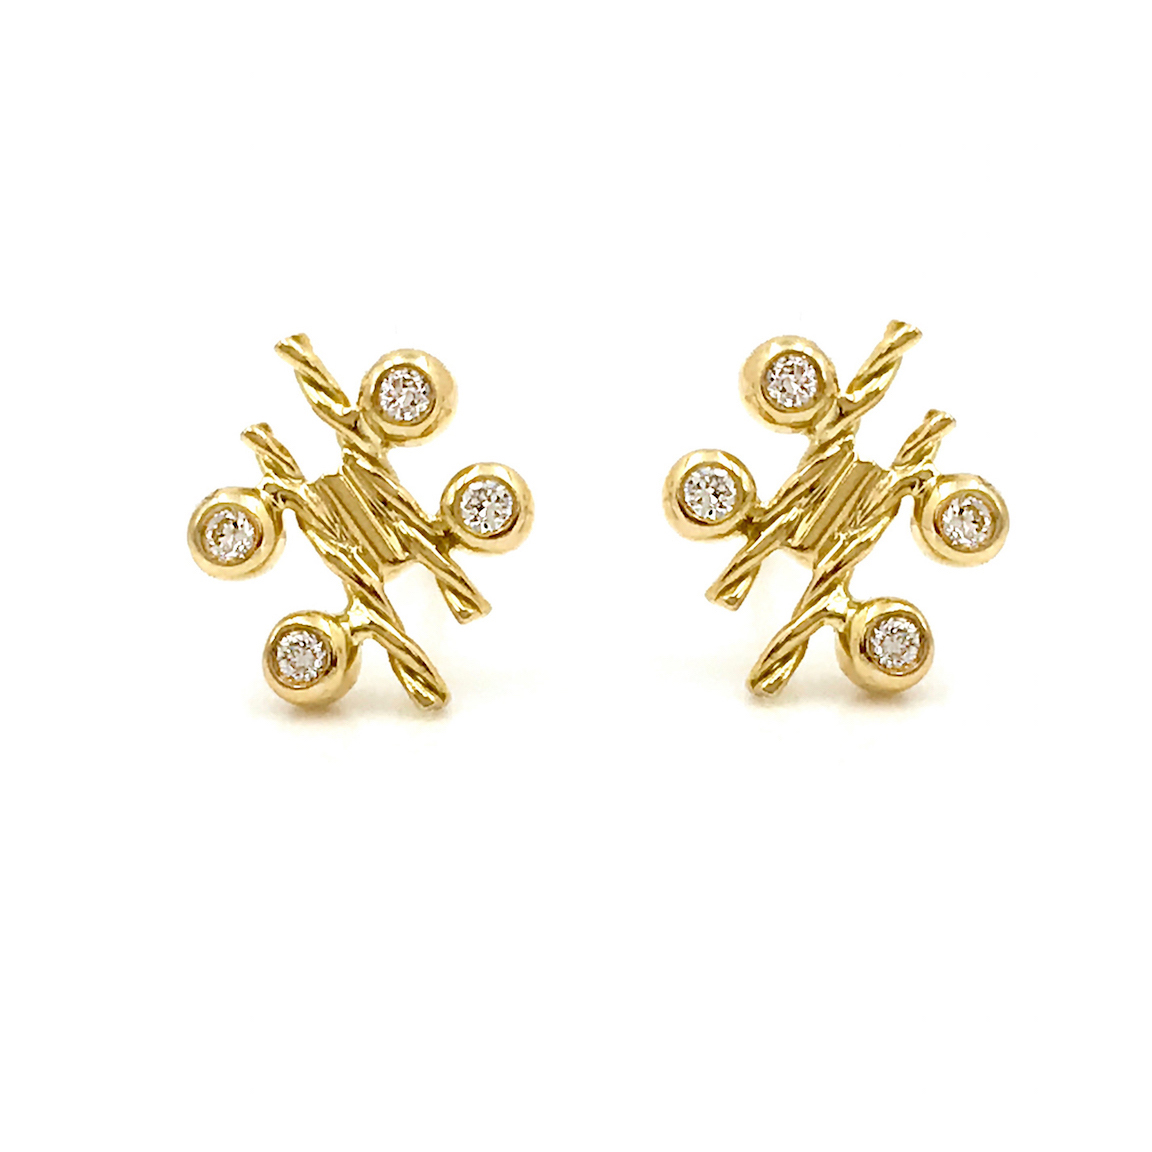 18k-gold-diamond-four-star-twist-bar-stud-earrings-SIS